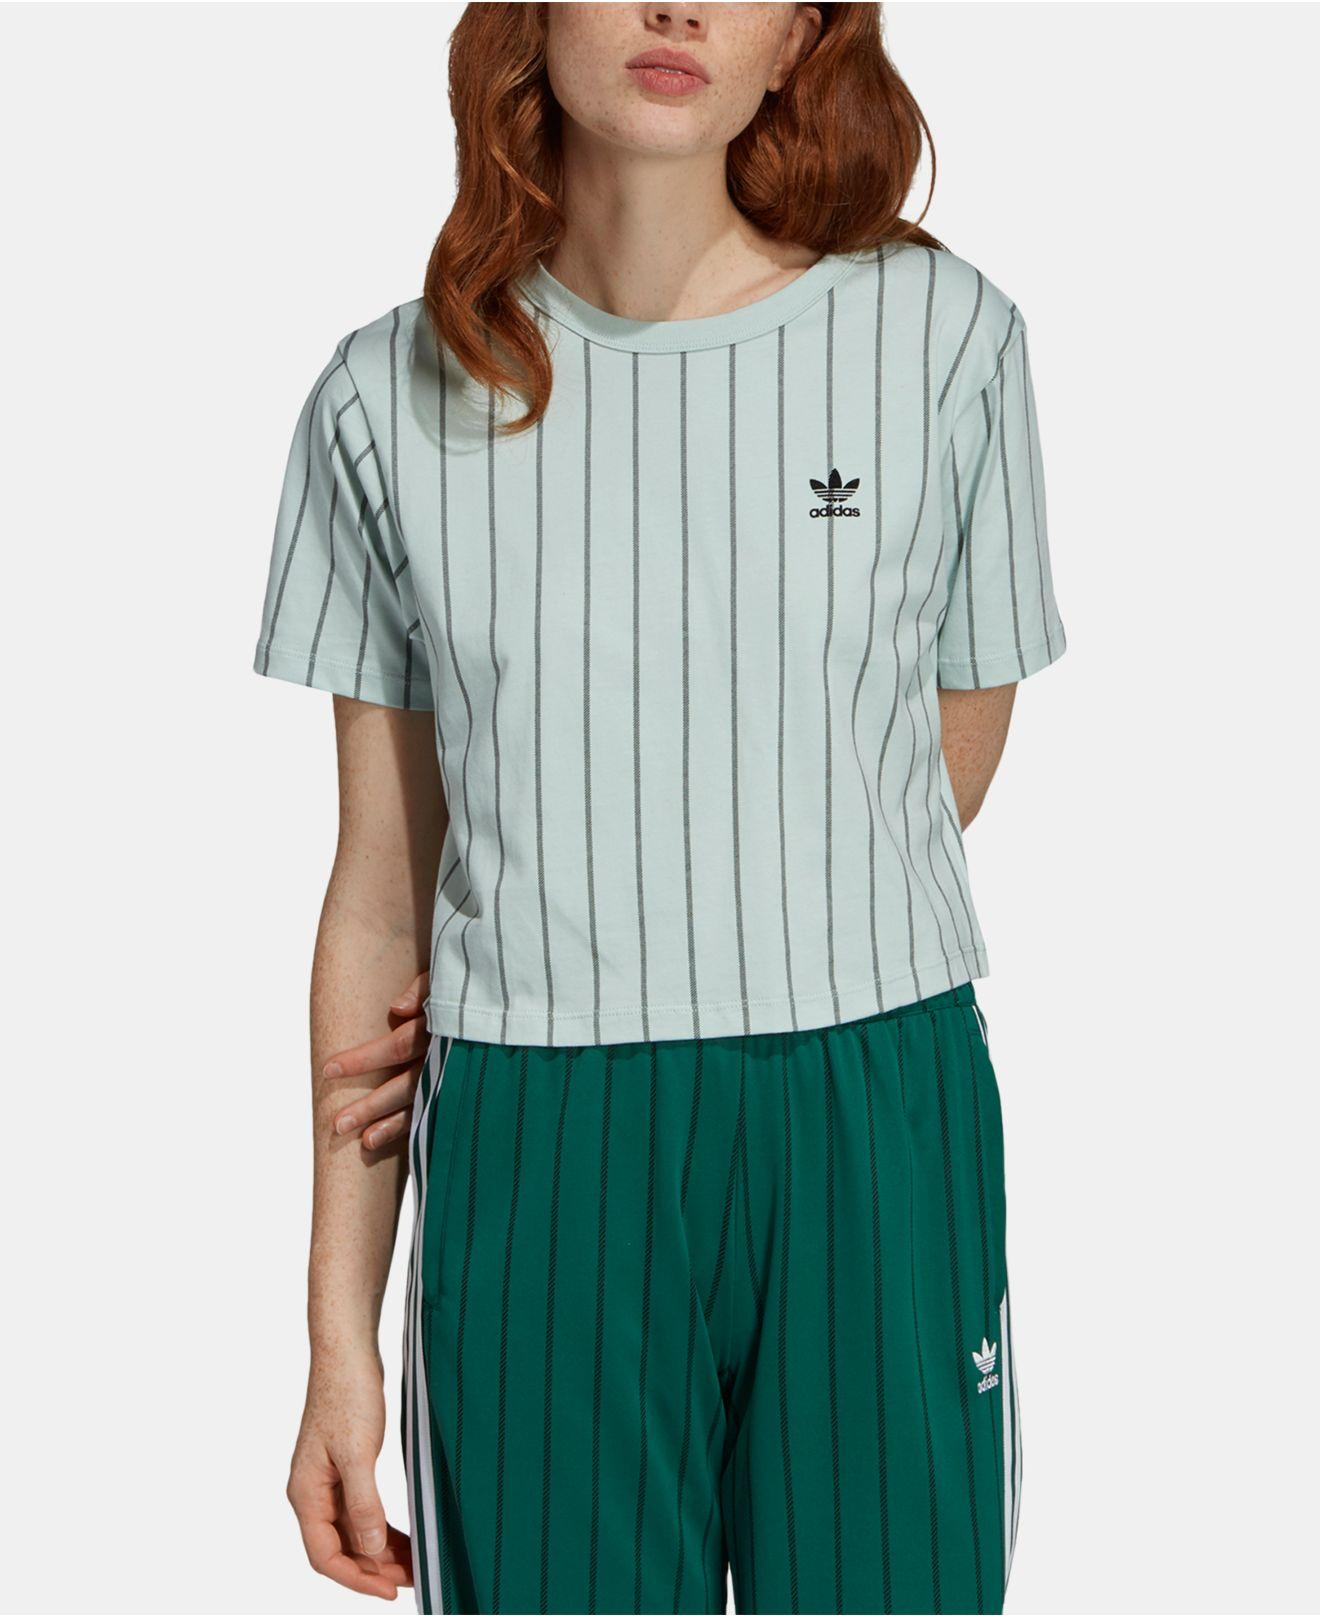 16fea0d919902 Adidas - Green Originals Stripe Out Cotton Cropped T-shirt - Lyst. View  fullscreen